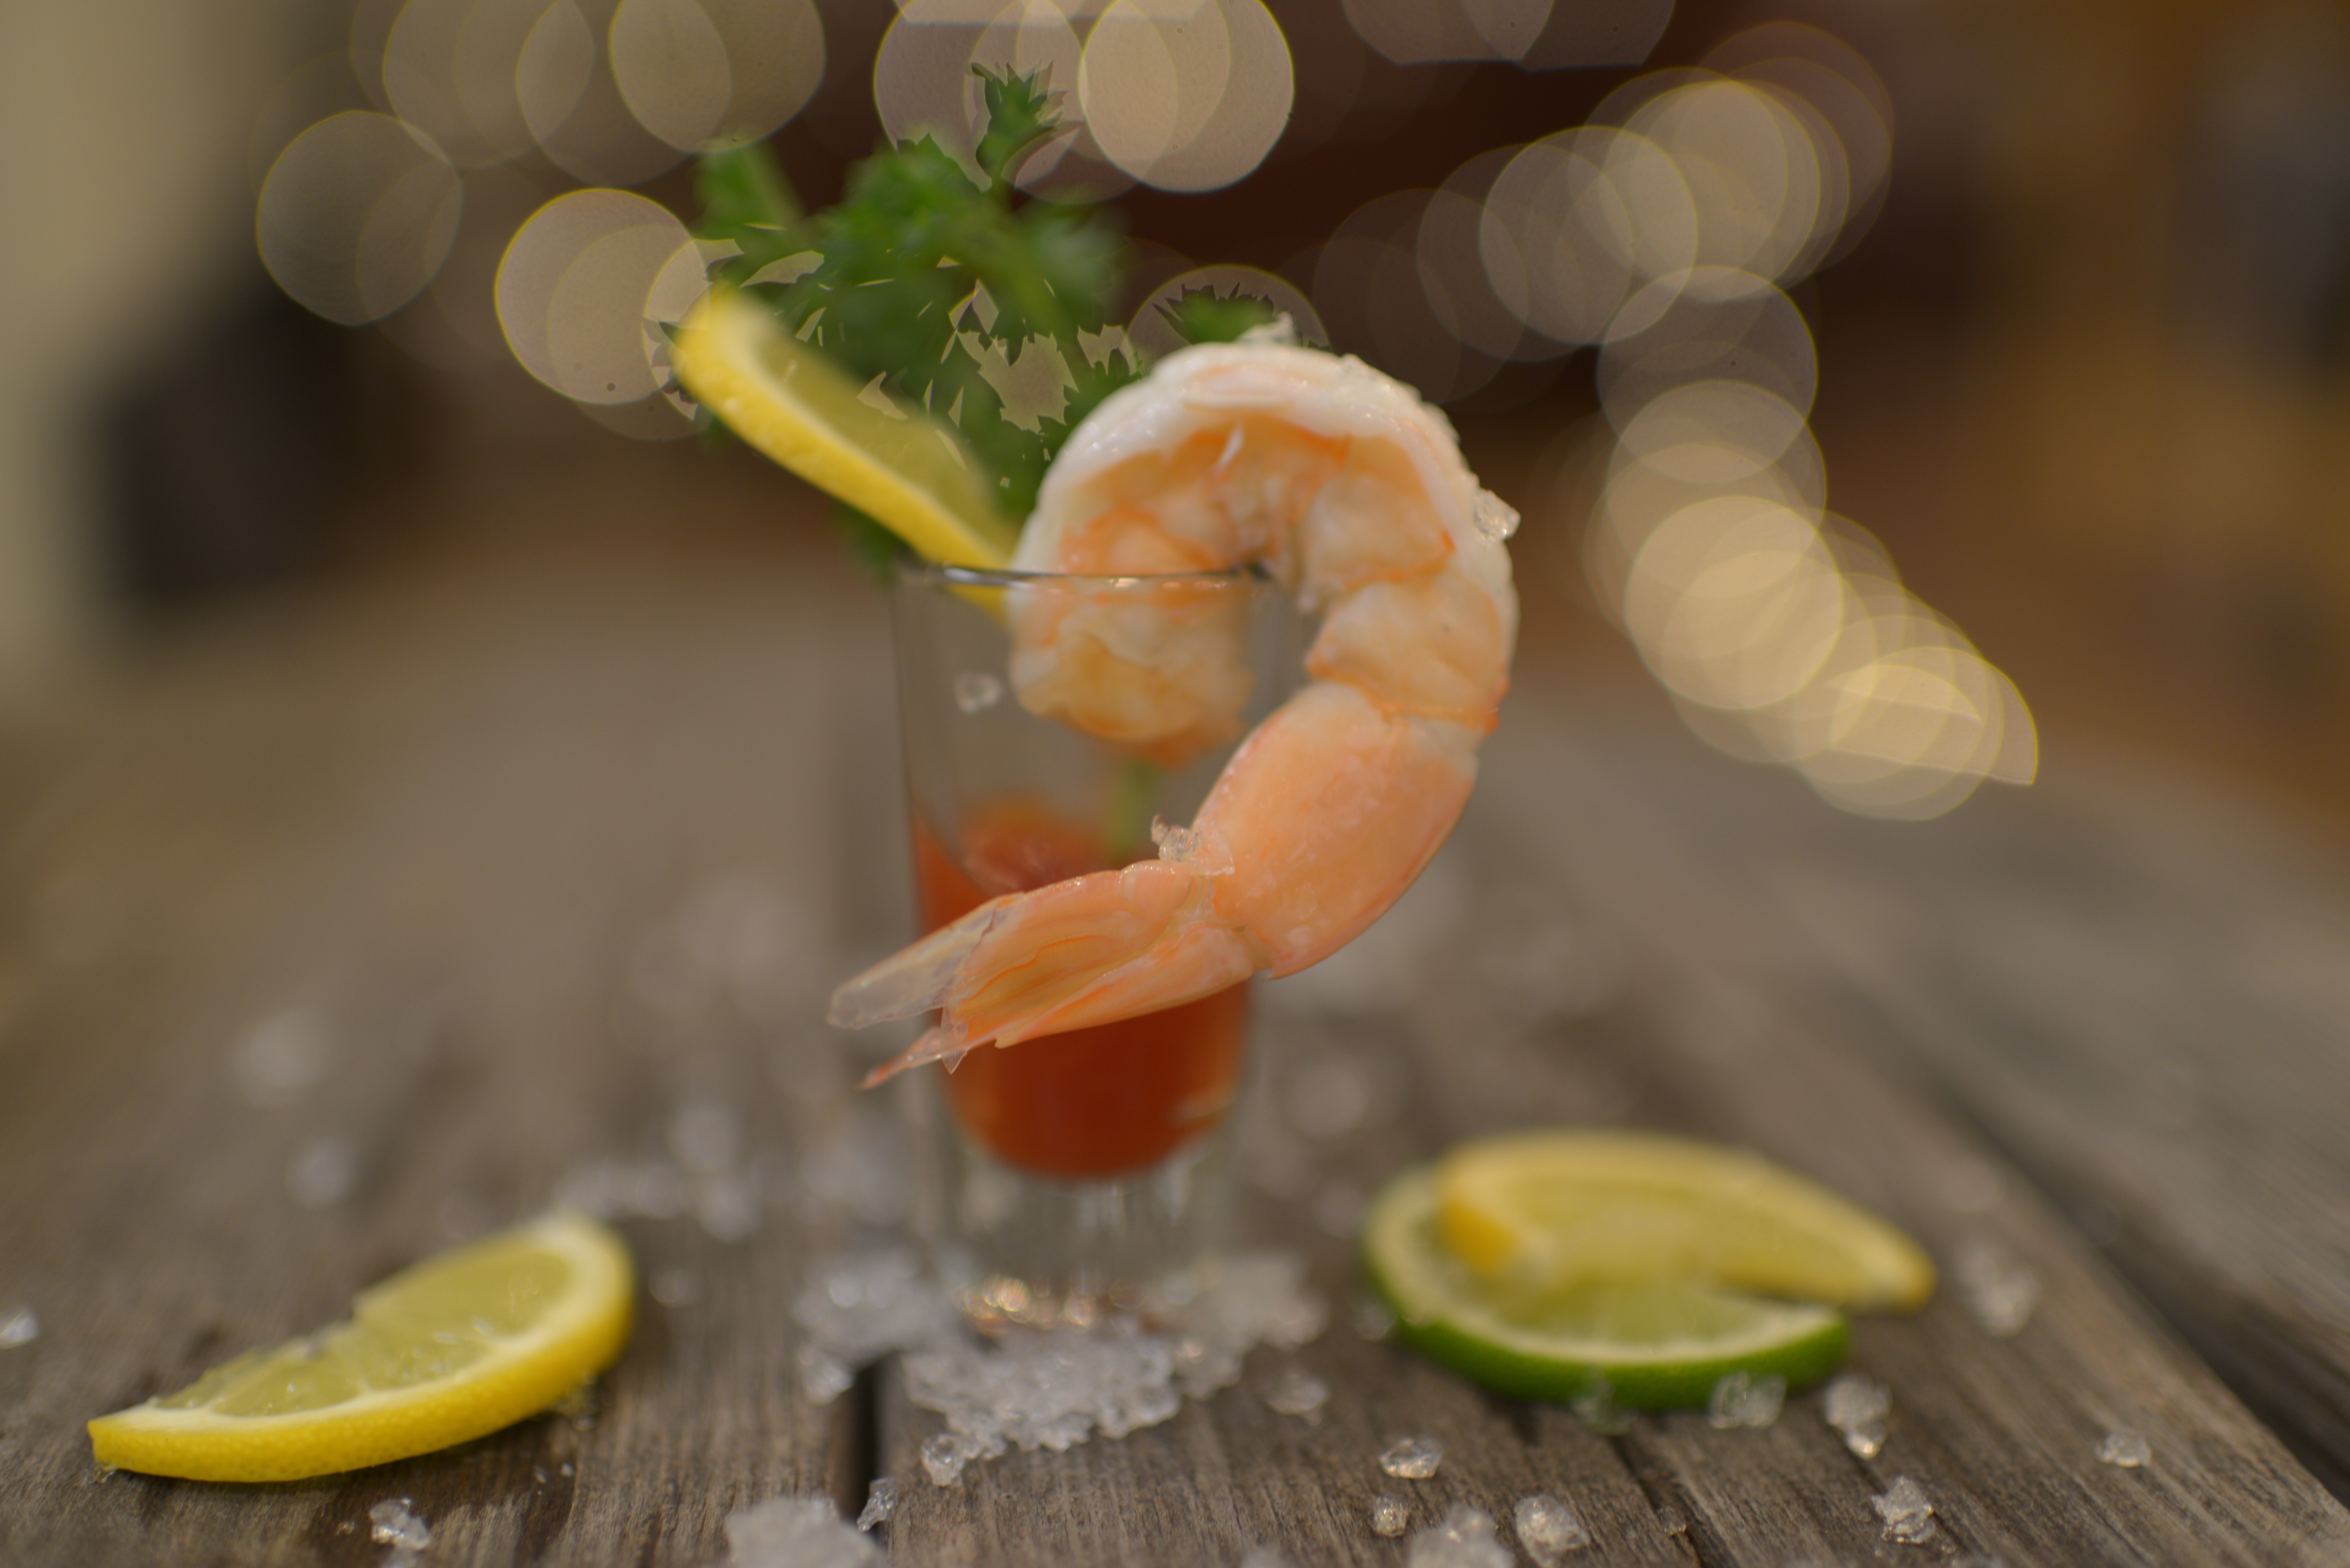 Sustainable Sea Products Introduces American Cooked Shrimp